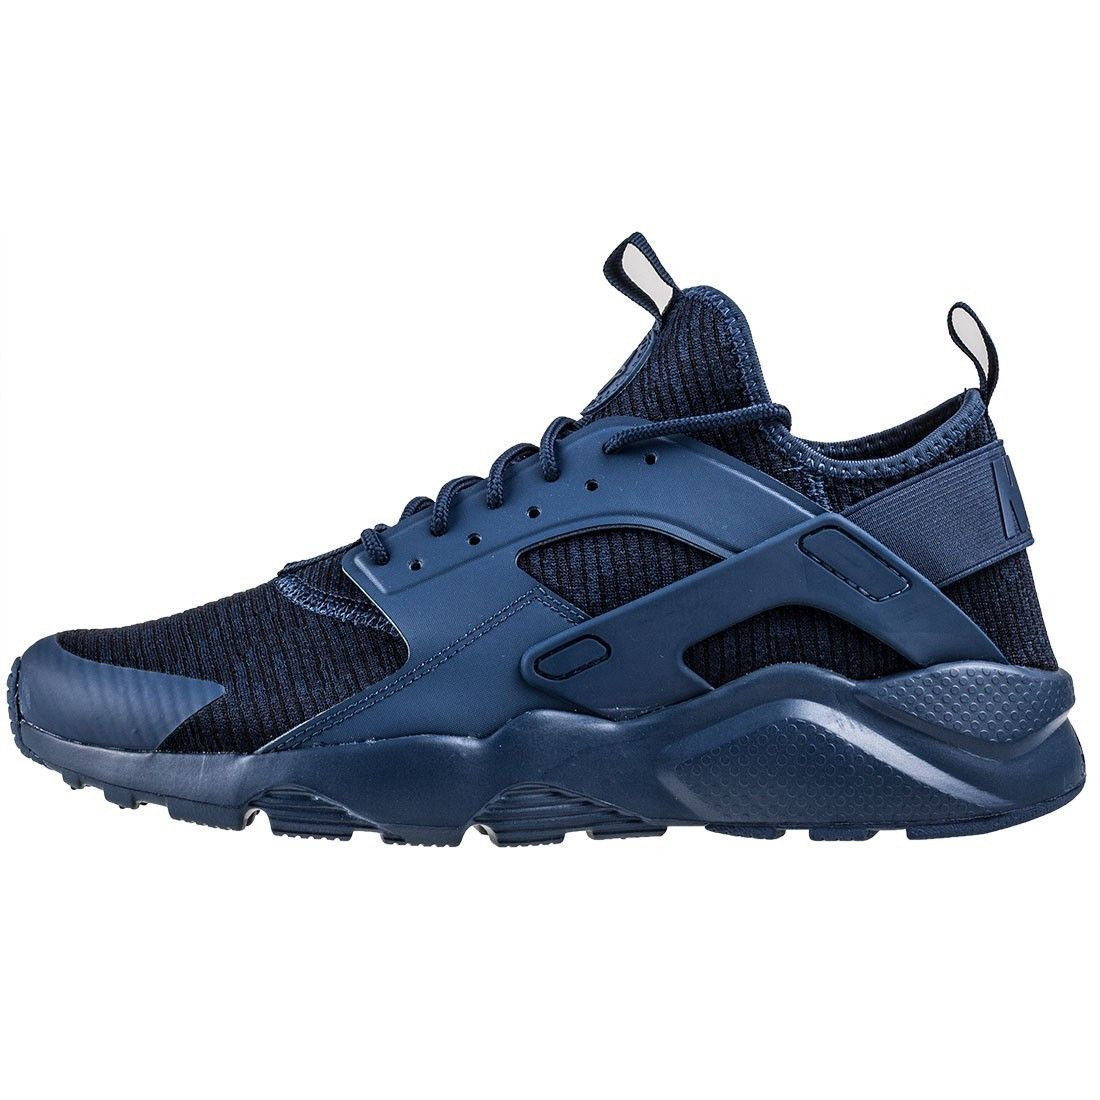 5 Bering Jasper Run Nike Chaussures Baskets Air Huarache Run Jasper Ultra Se b90660